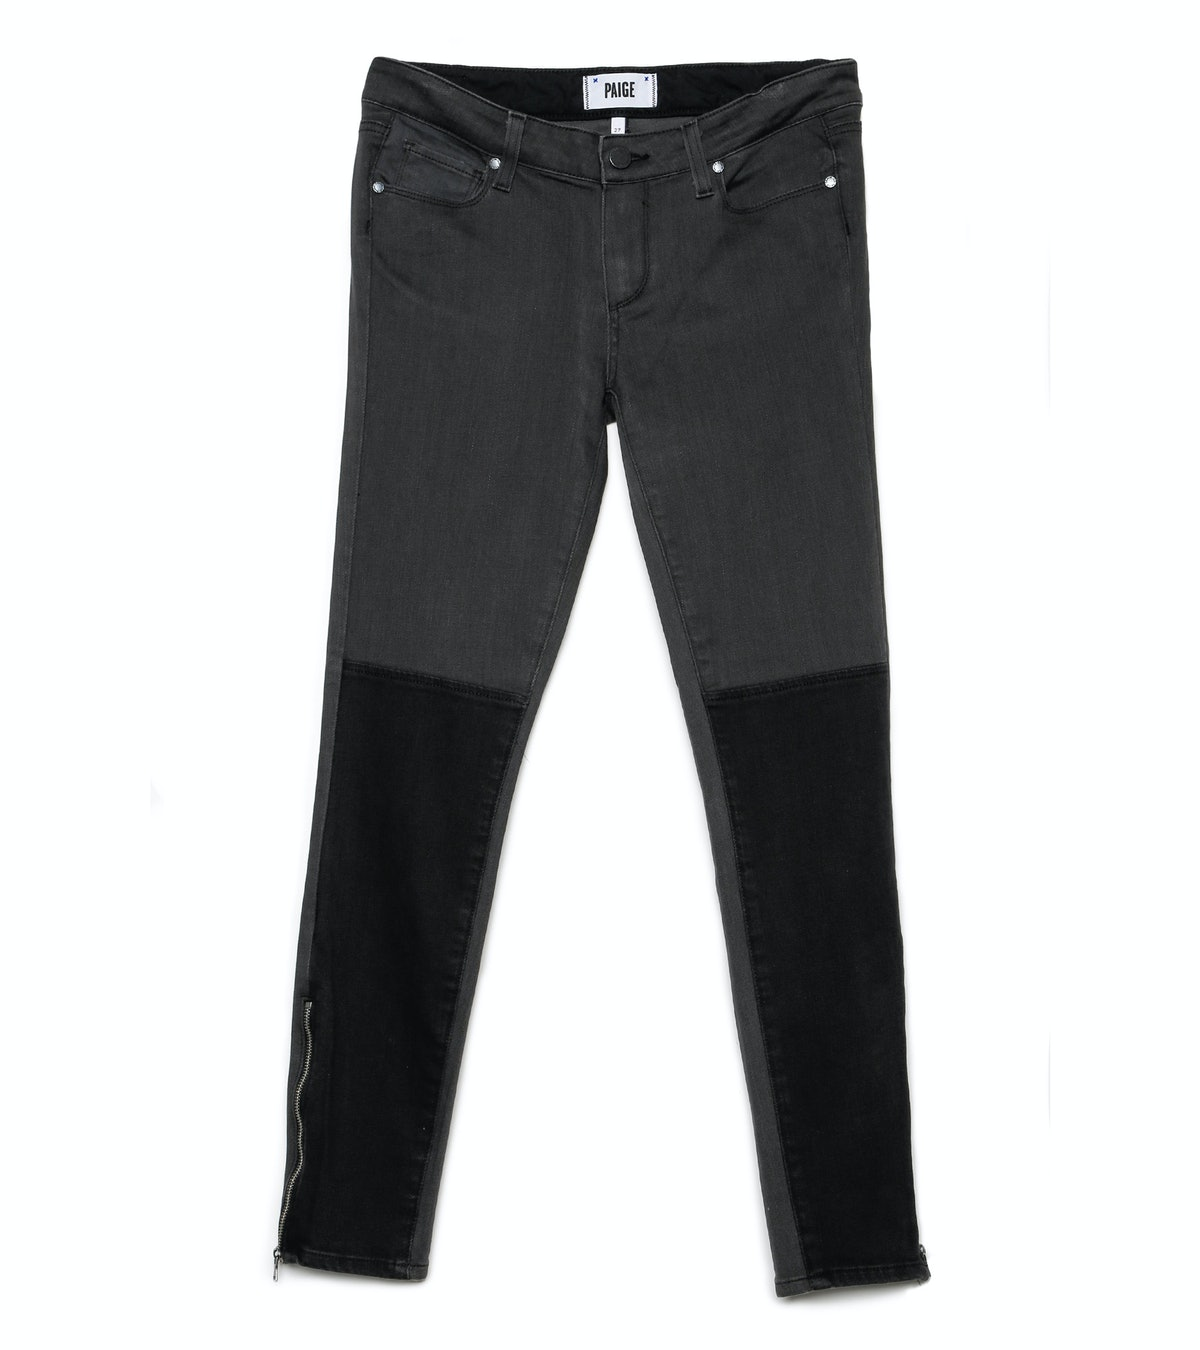 I am always on the search for new denim pieces—so I was thrilled to find these great fitting patchwork jeans from Paige. *Paige Cara zip jean, $229, [paigeusa.com](http://www.paigeusa.com/cara-zip-concrete/d/400002225).*